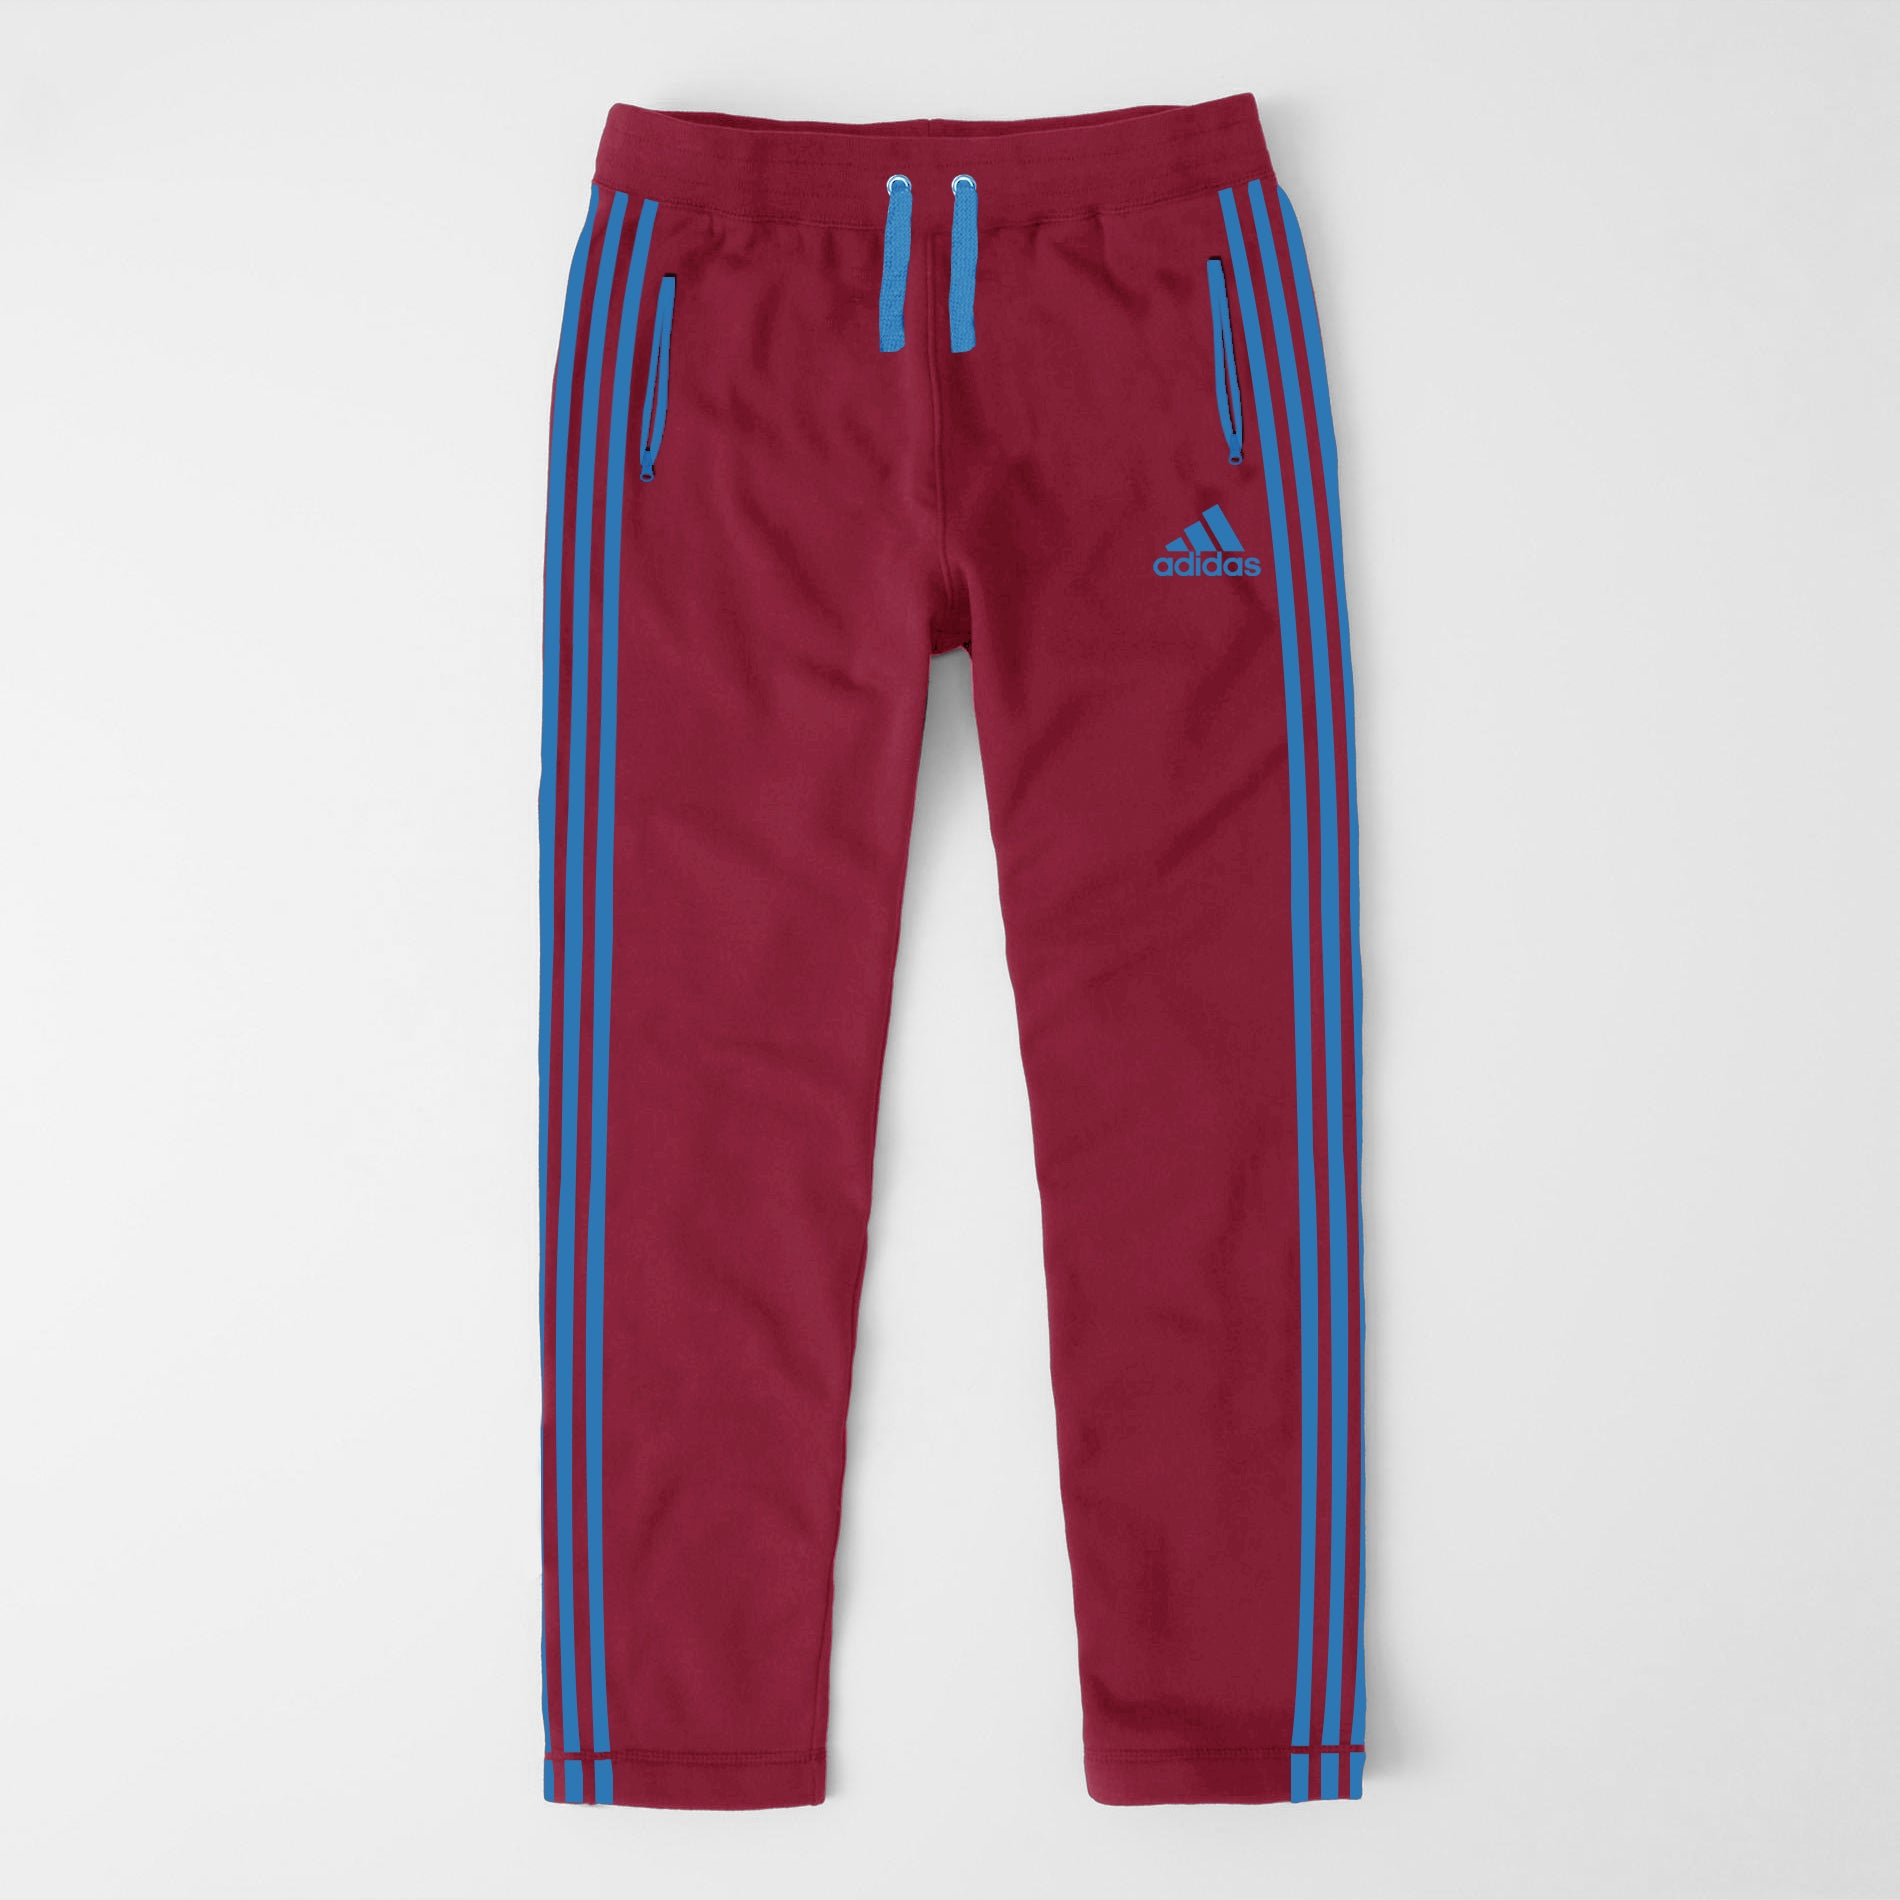 Adidas Single Jersey Regular Fit Trouser For Men-Carrot With Blue Stripes-NA9364